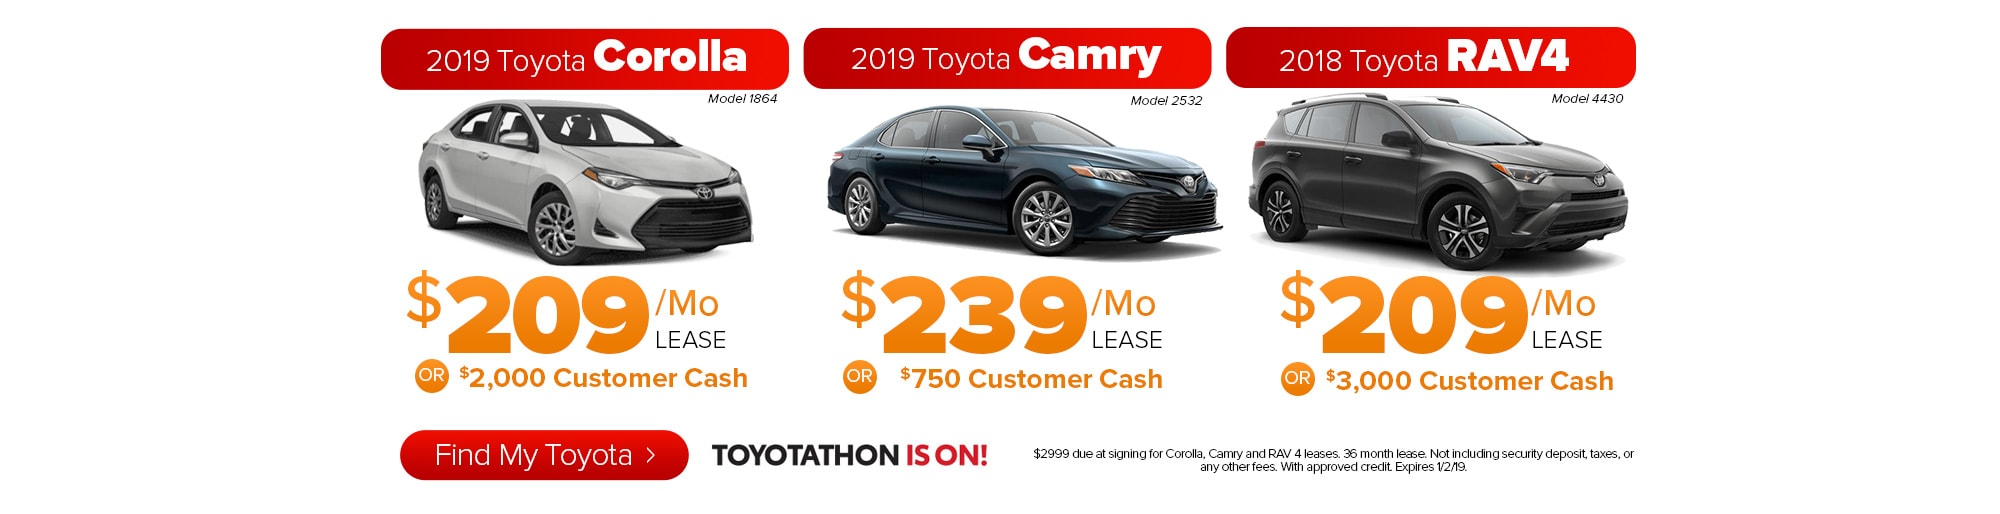 Toyota Dealer Canton Mi New Certified Used Pre Owned Fuel Filter Location On 2006 Camry Car Dealership Serving Ann Arbor Detroit Dearborn Victory Of